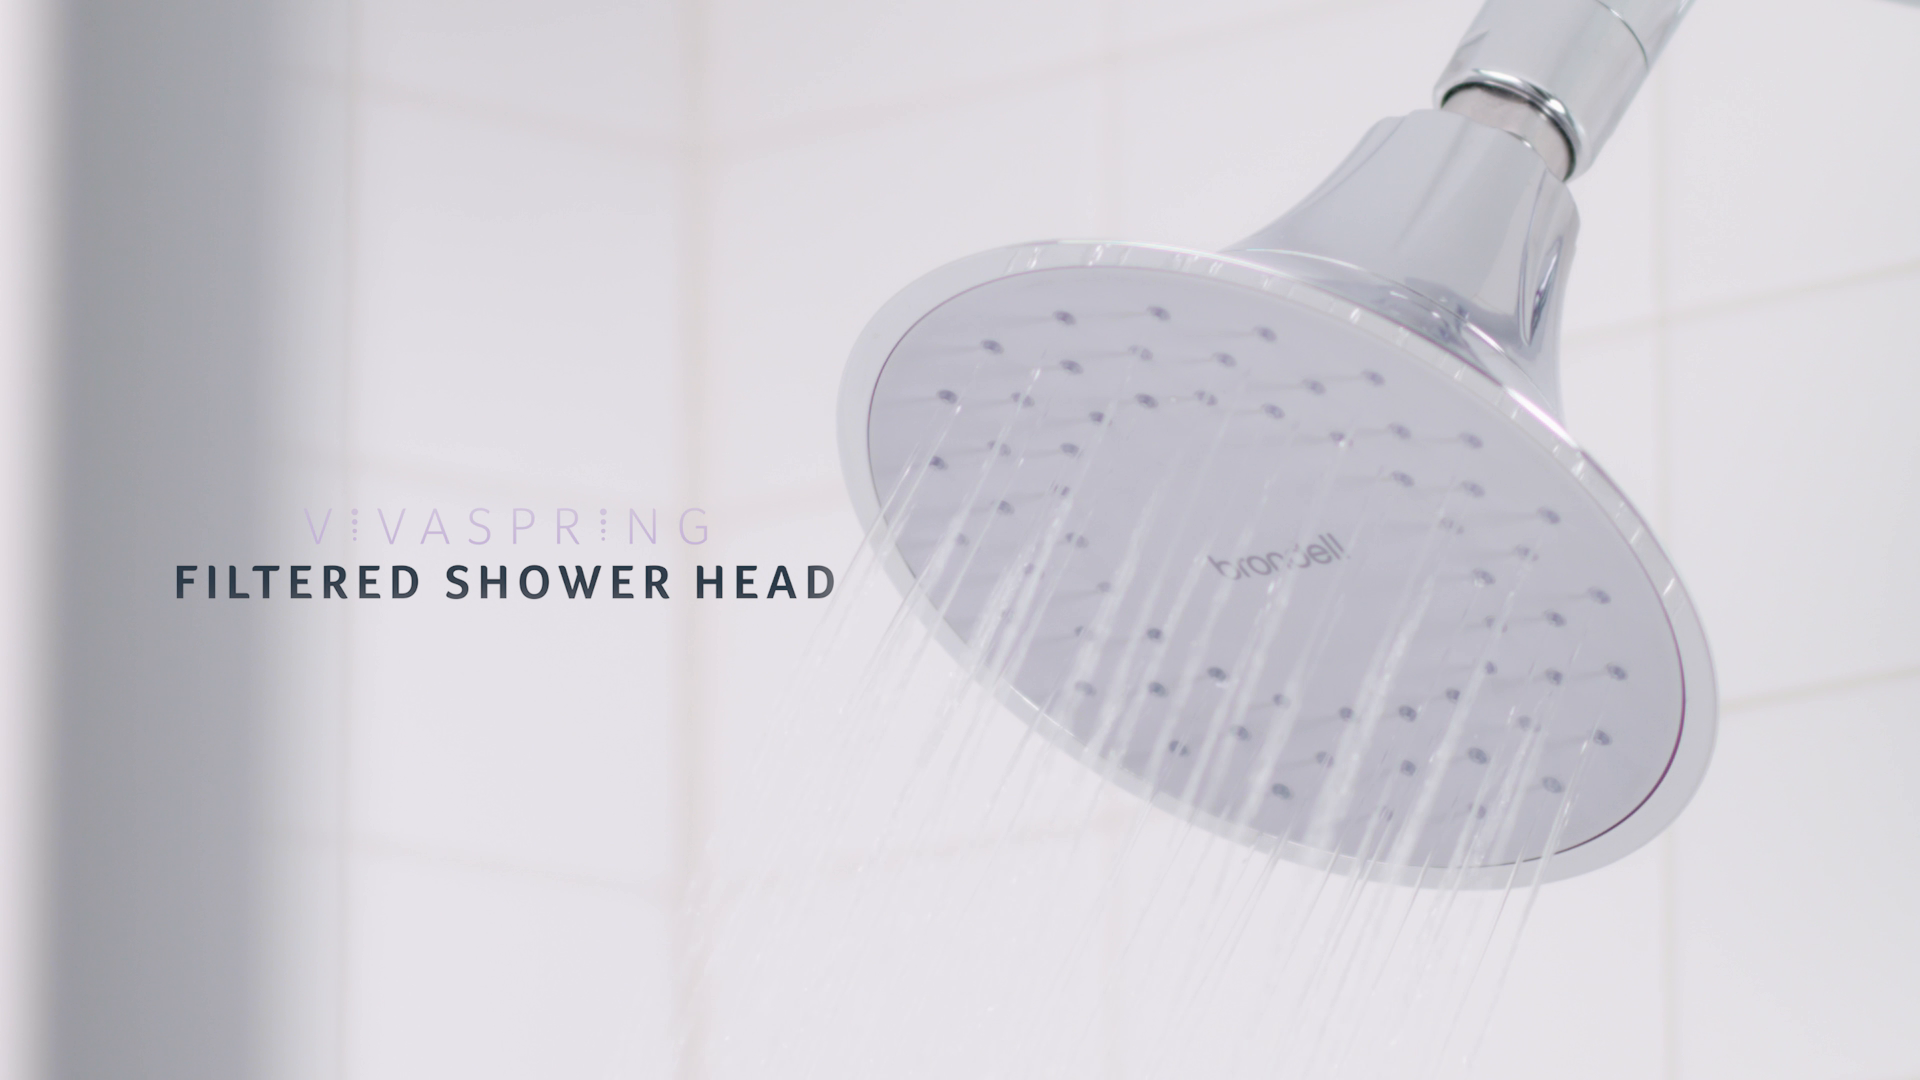 hose the hand chrome with store handheld held filtered lifestyle culligan products handshower gpm shower head